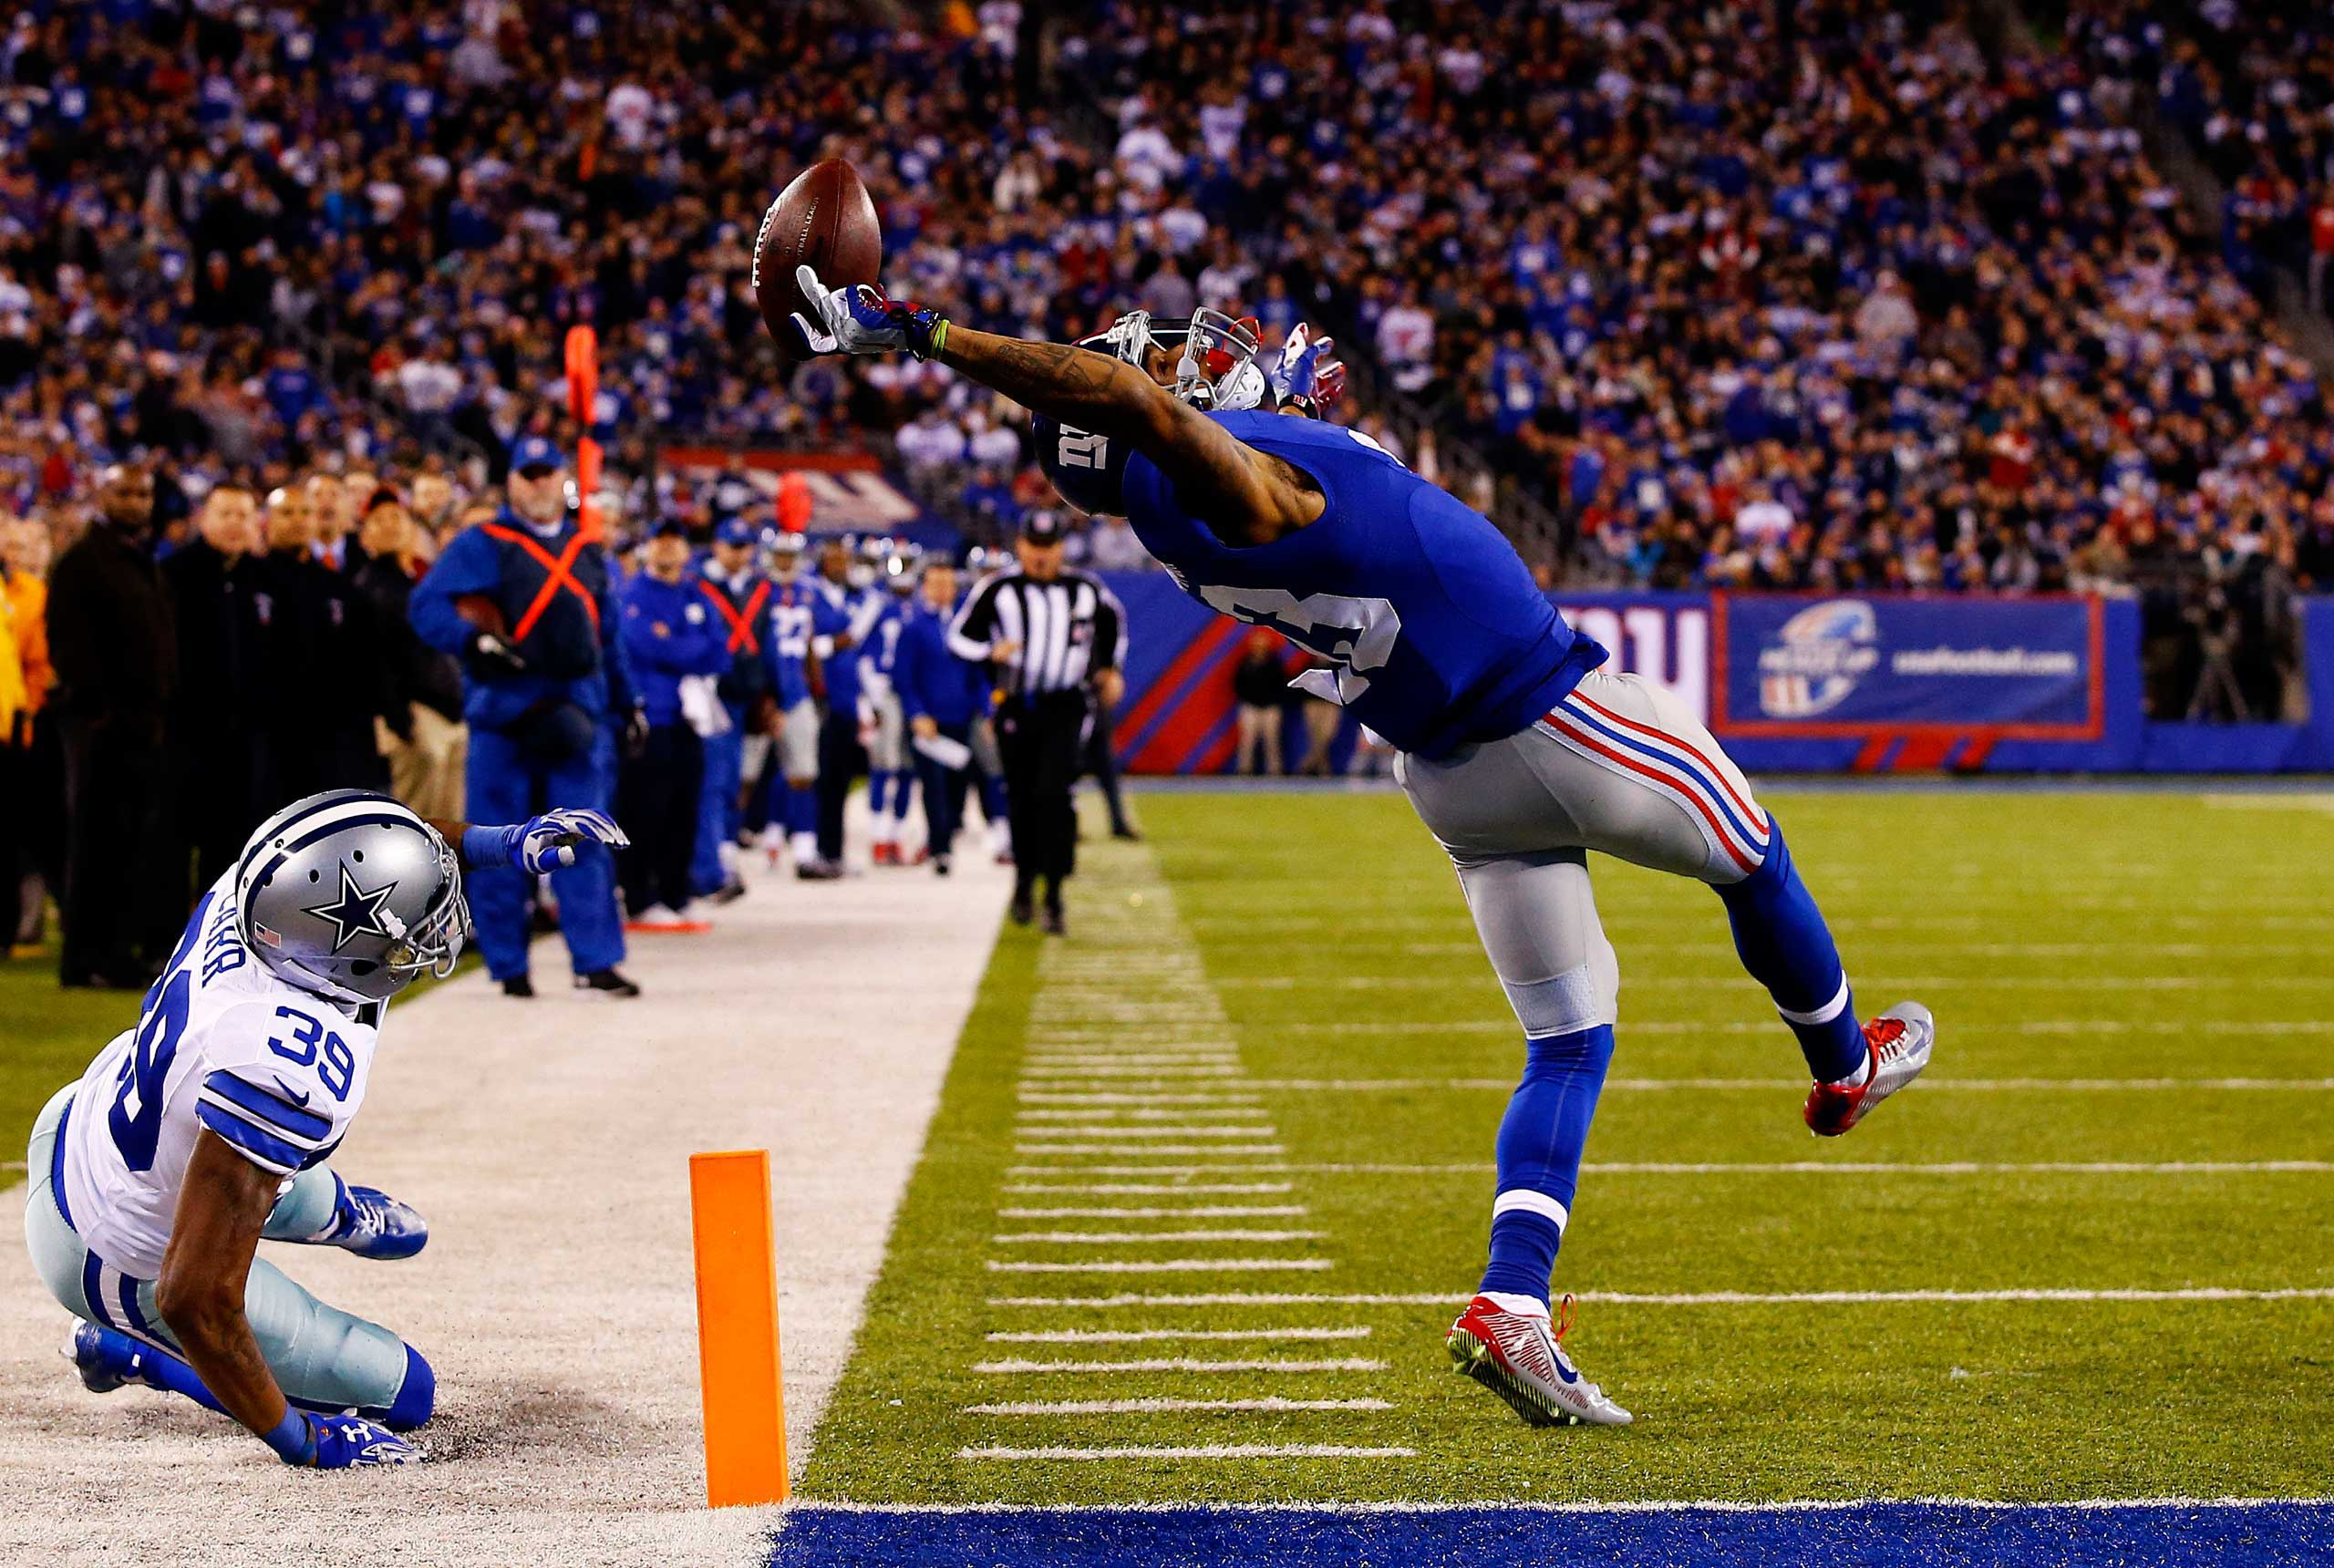 Odell Beckham of the New York Giants scores a touchdown in the second quarter against the Dallas Cowboys at MetLife Stadium in East Rutherford, N.J., Nov. 23, 2014.